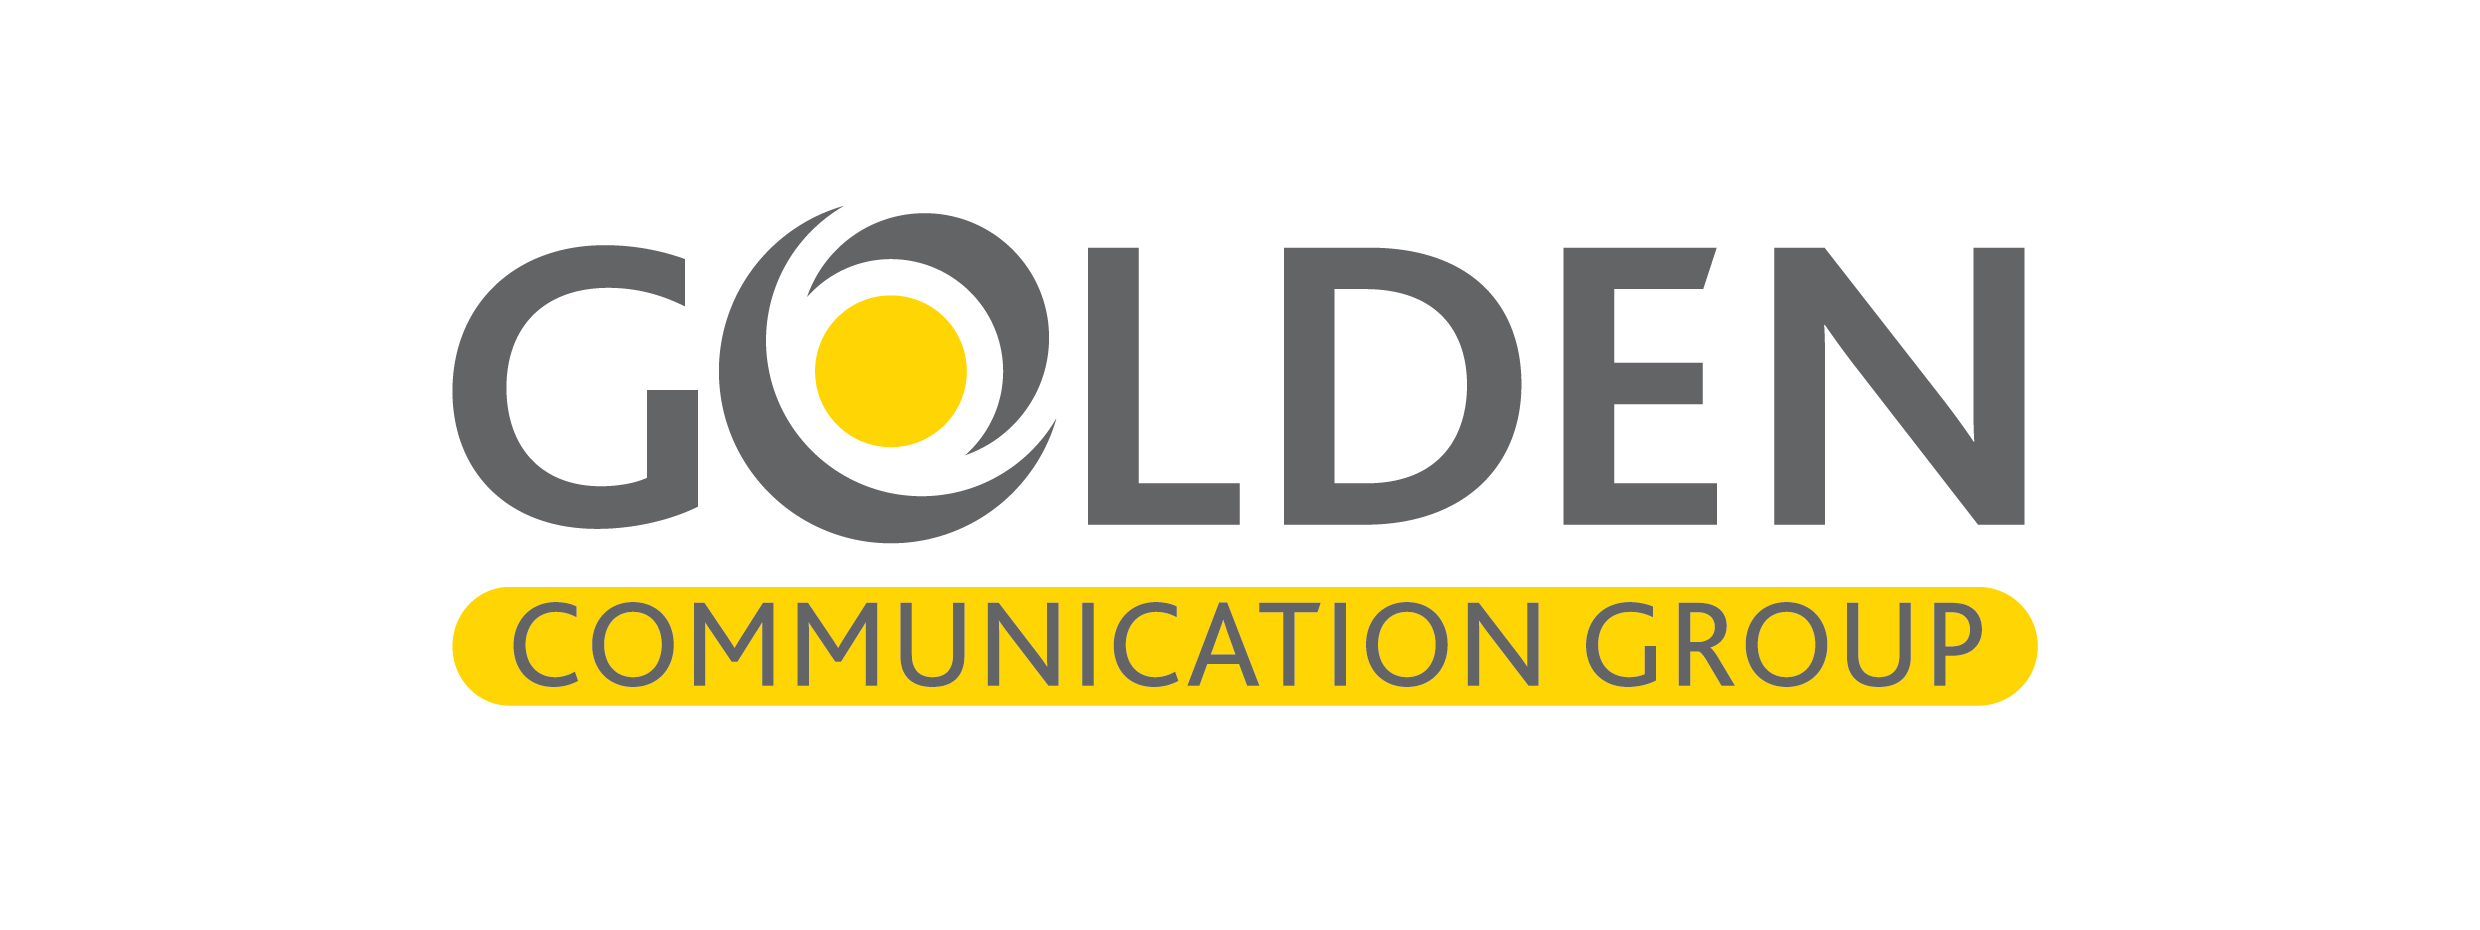 Golden Communication Group